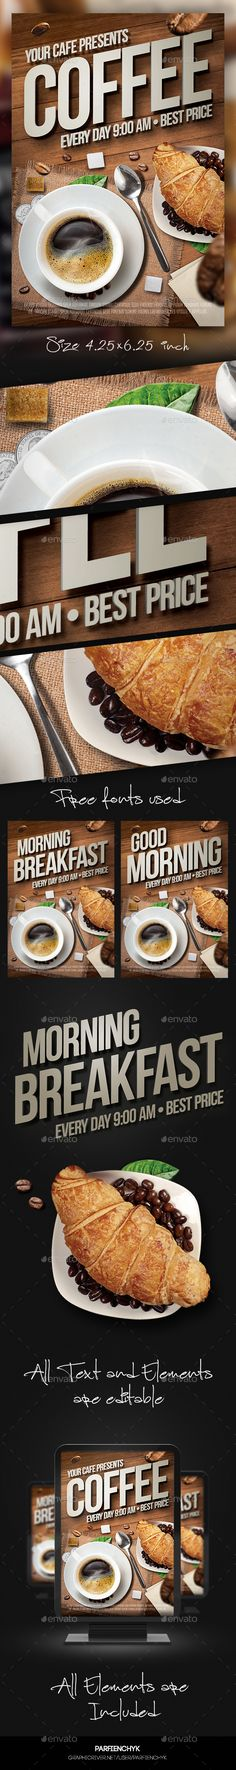 Coffee Flyer Template PSD #design Download: http://graphicriver.net/item/coffee-flyer-template/13604424?ref=ksioks